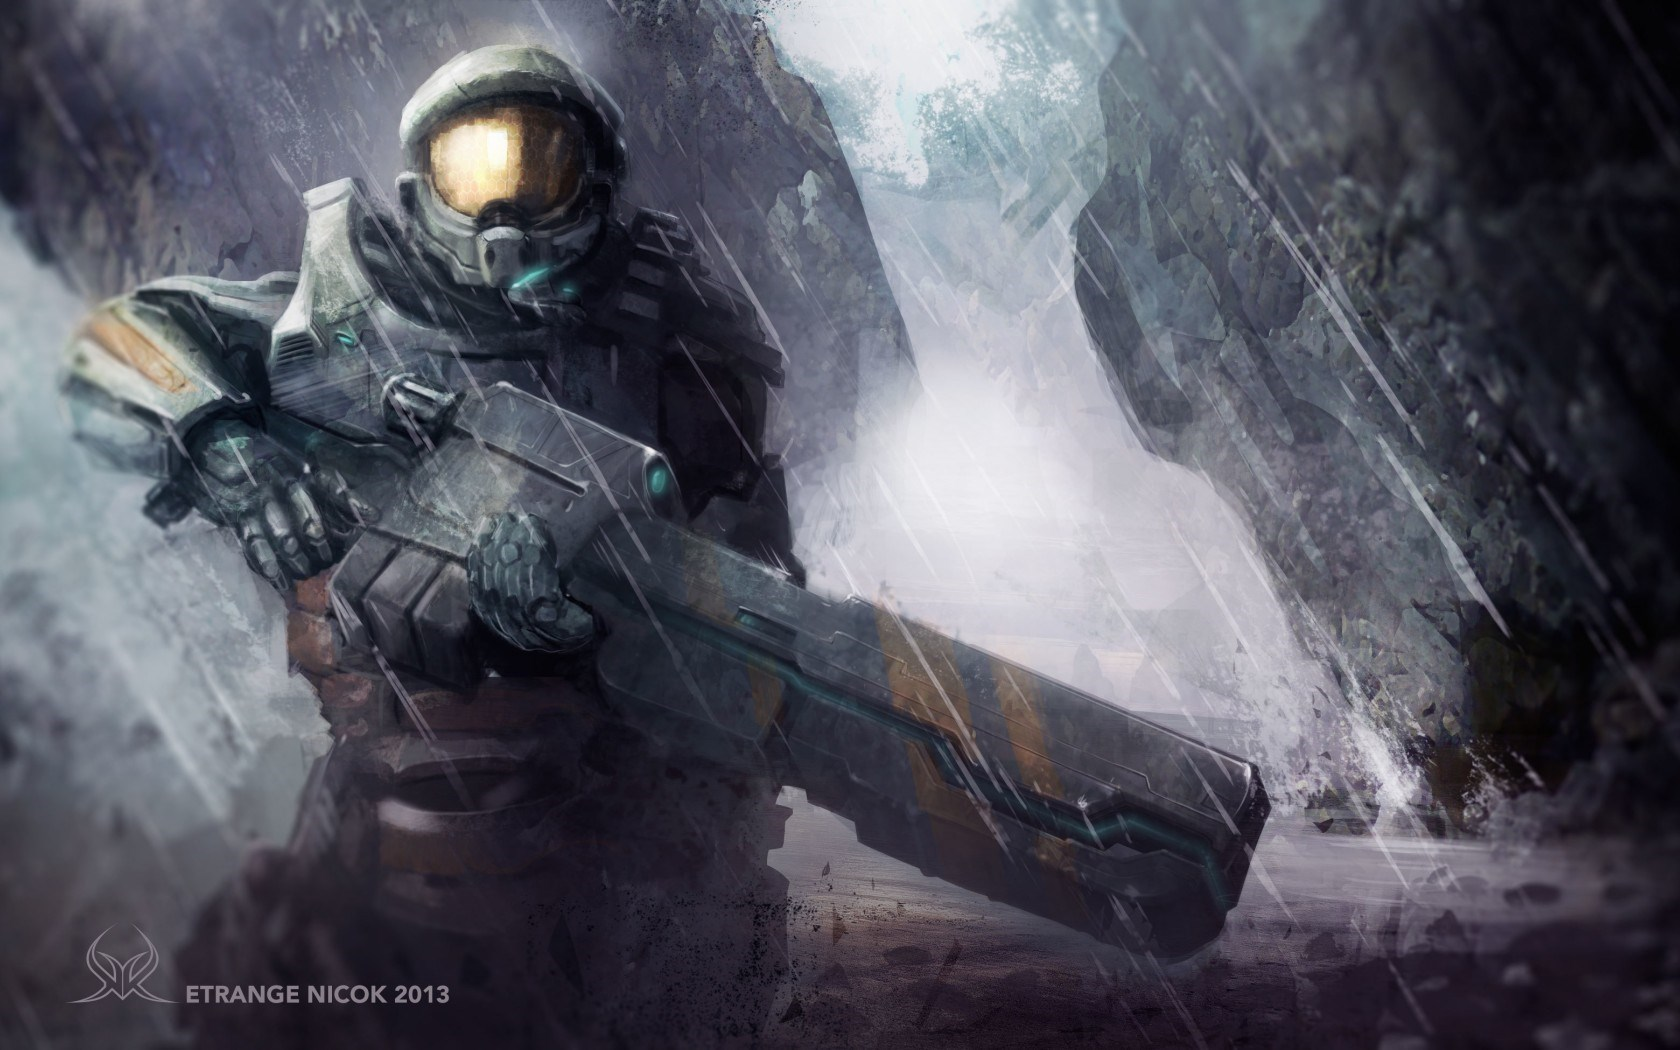 Halo Armor Warrior Weapon Rain Art